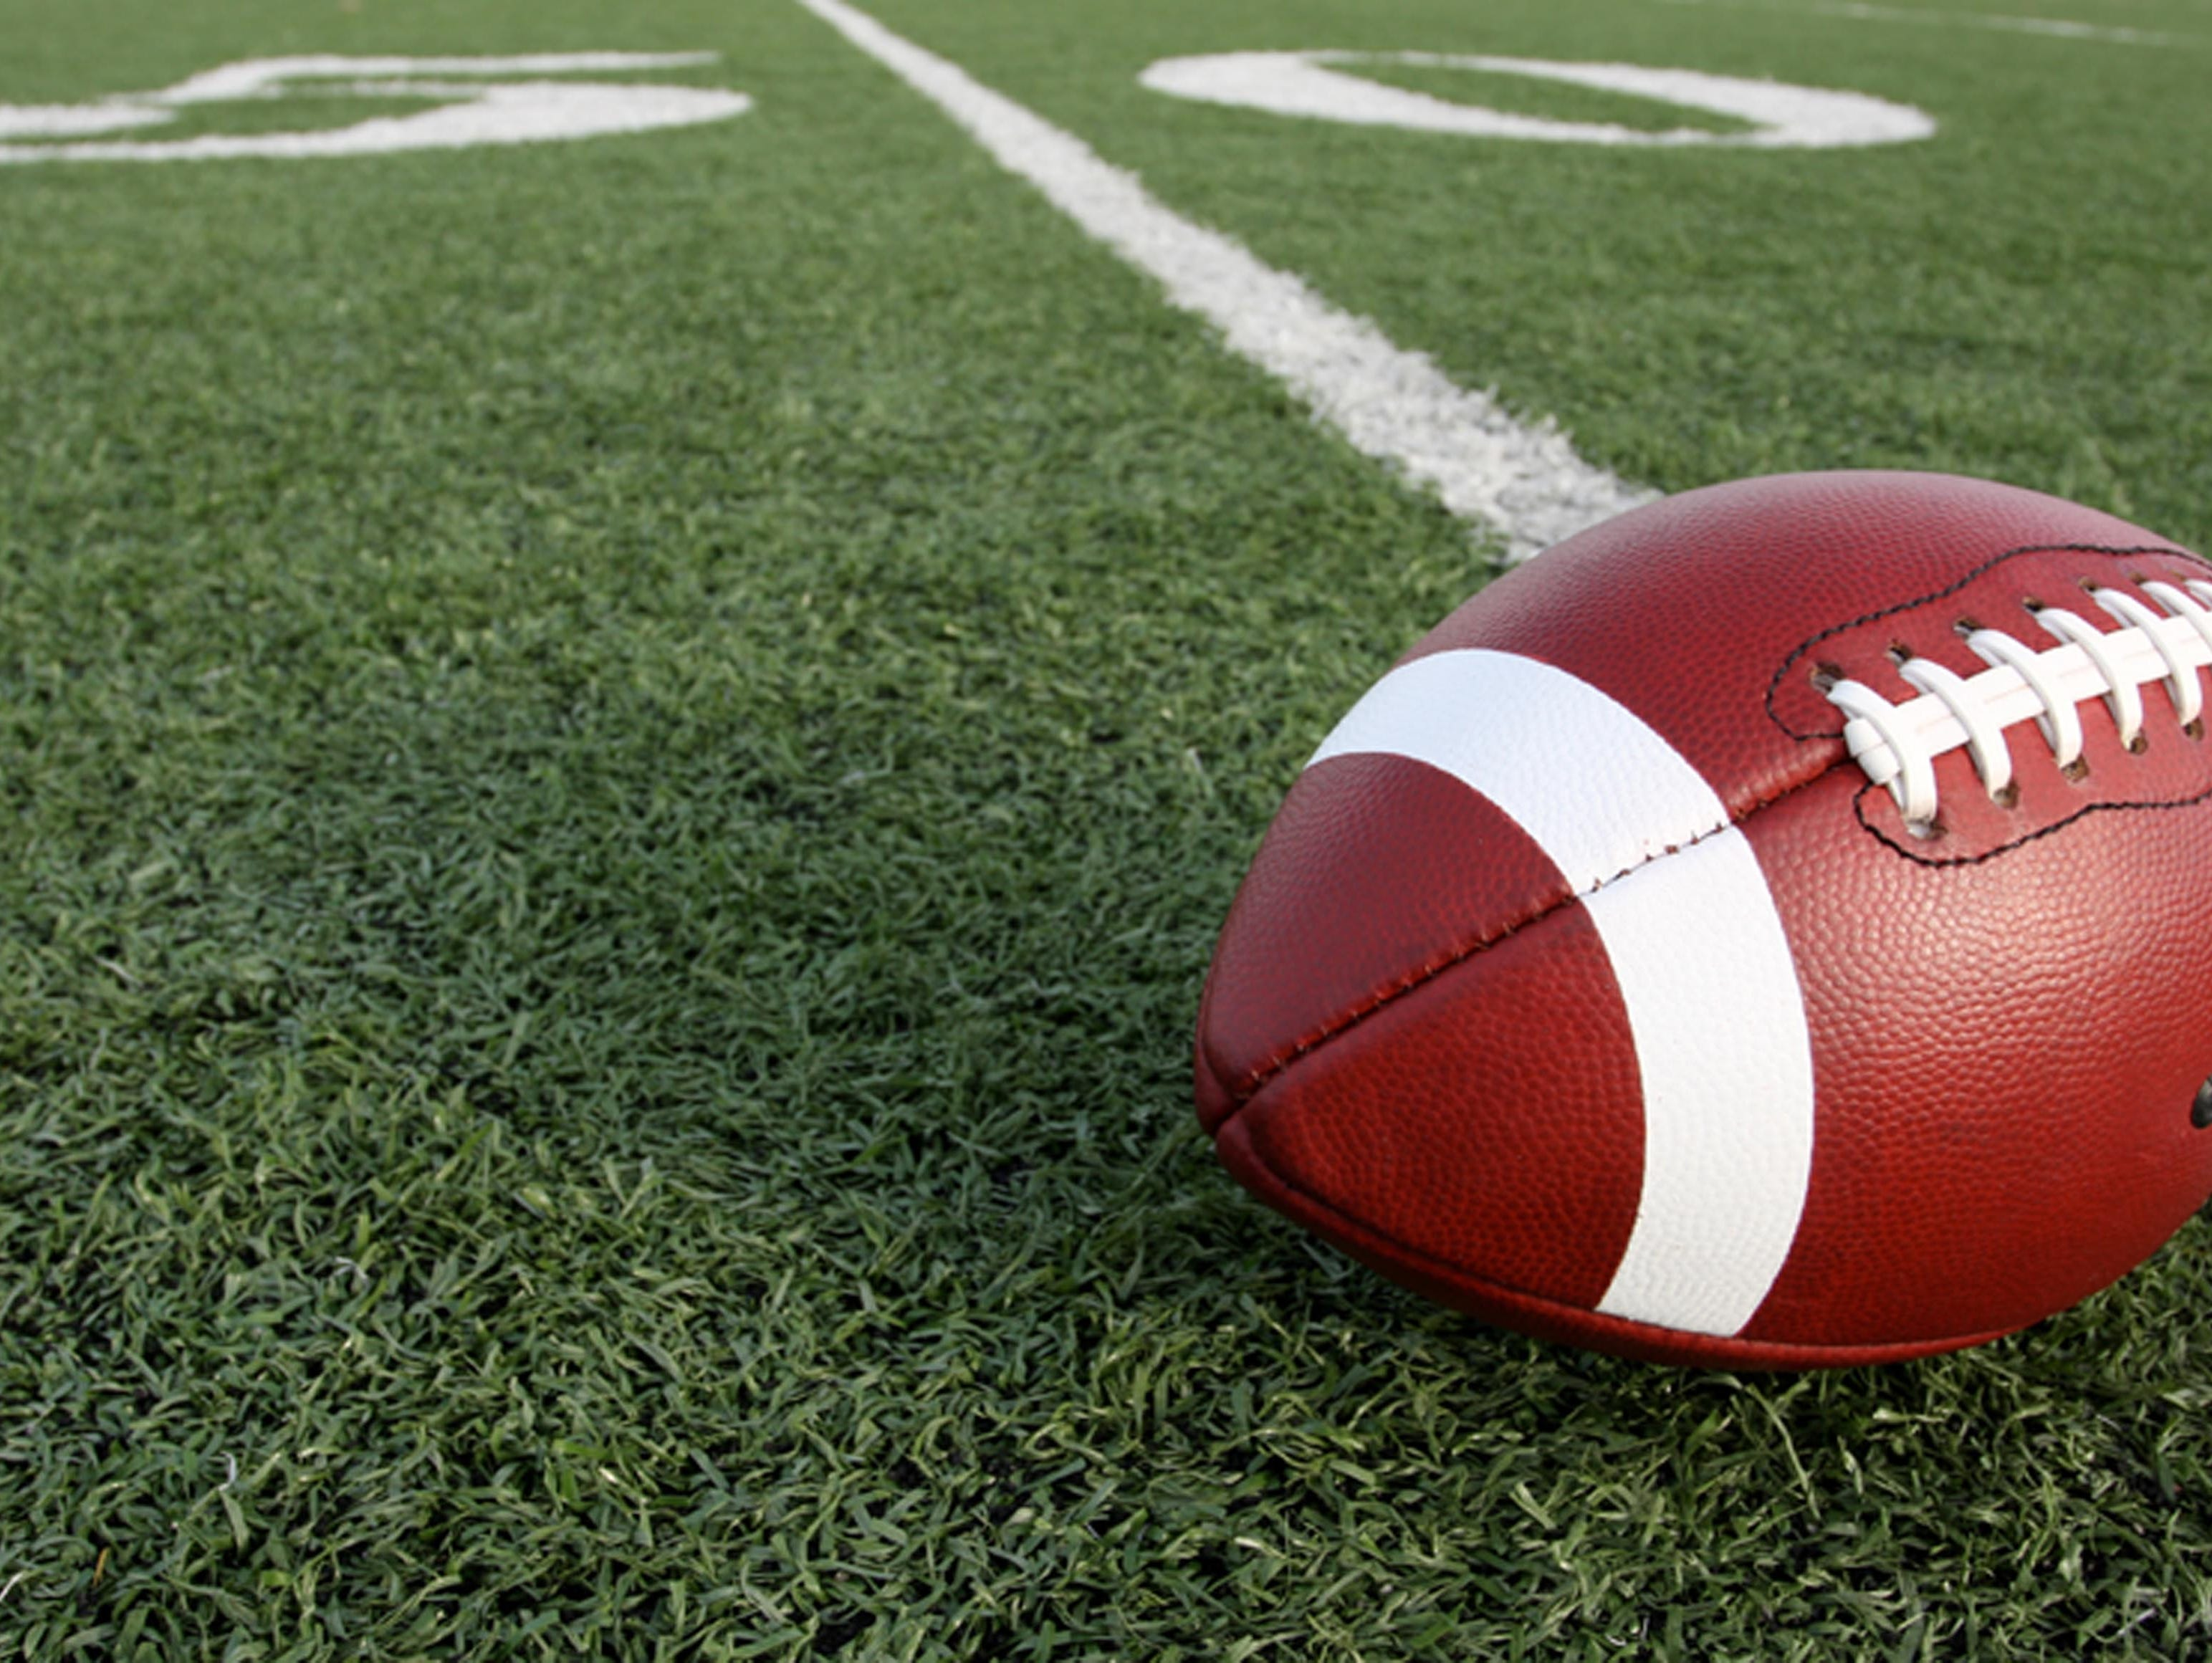 The Diocese of Jackson has responded to the MHSAA's ruling